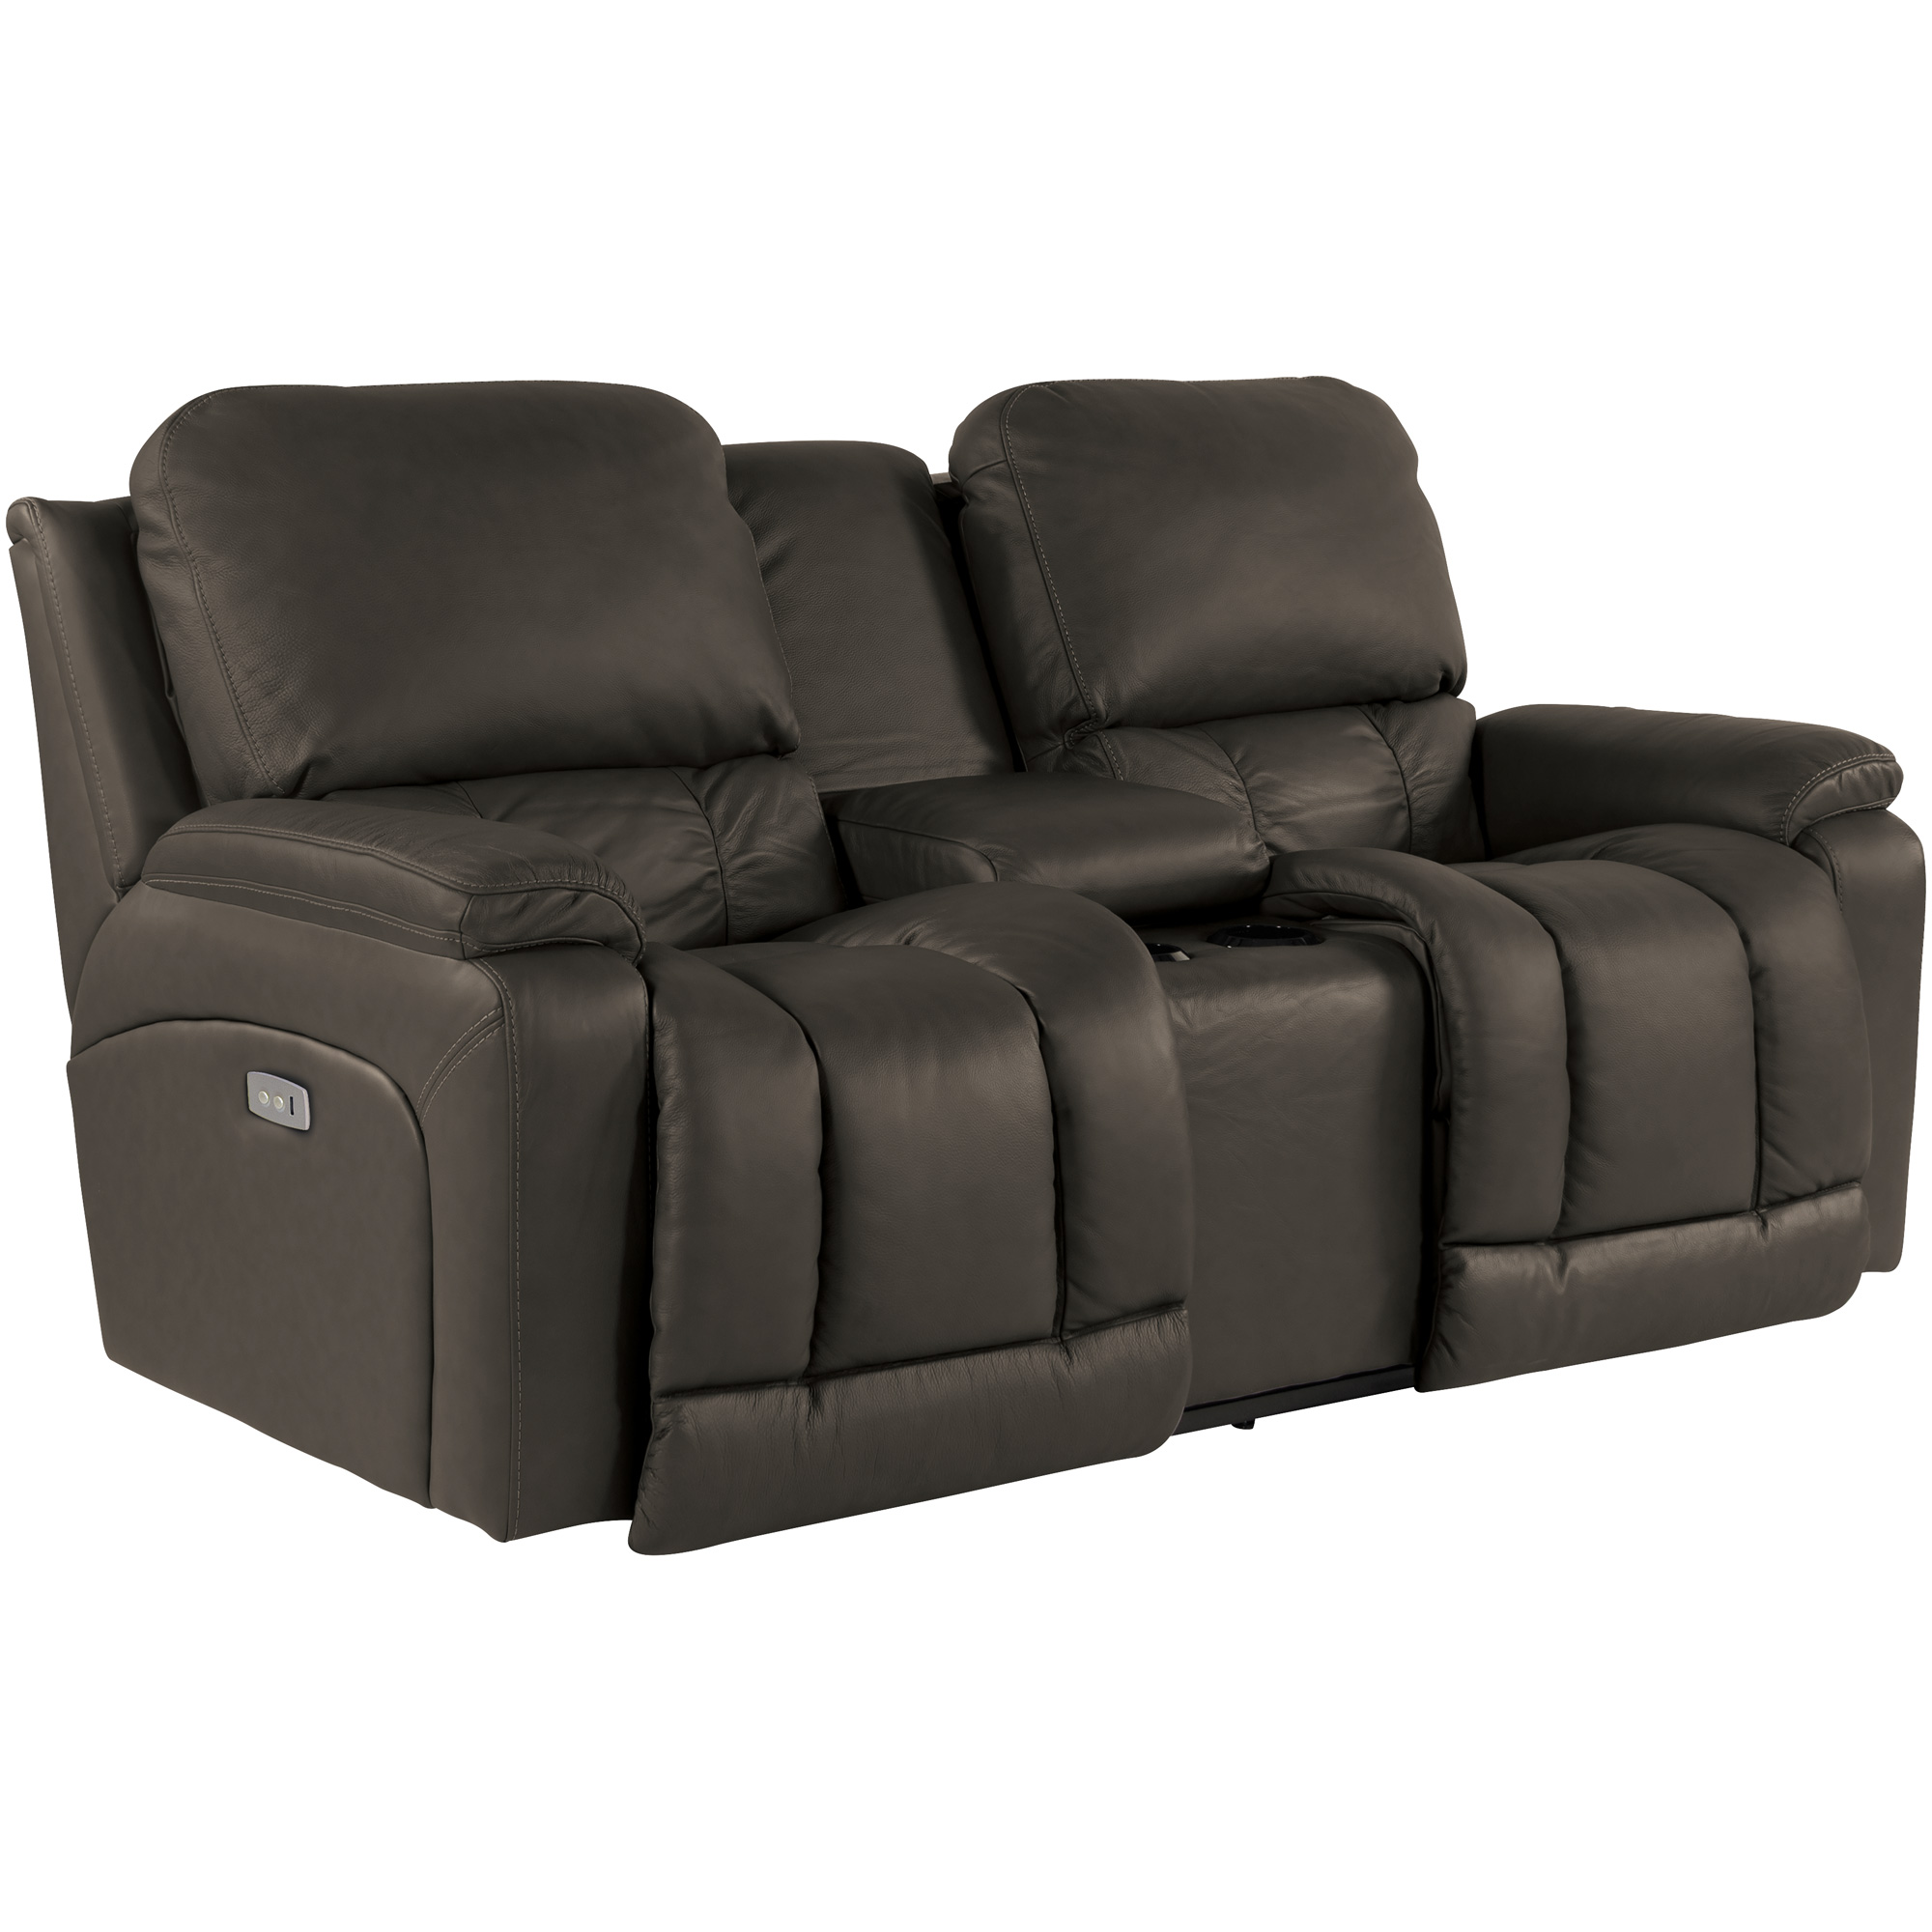 La-Z-Boy | Greyson Shitake Power Reclining Console Loveseat Sofa